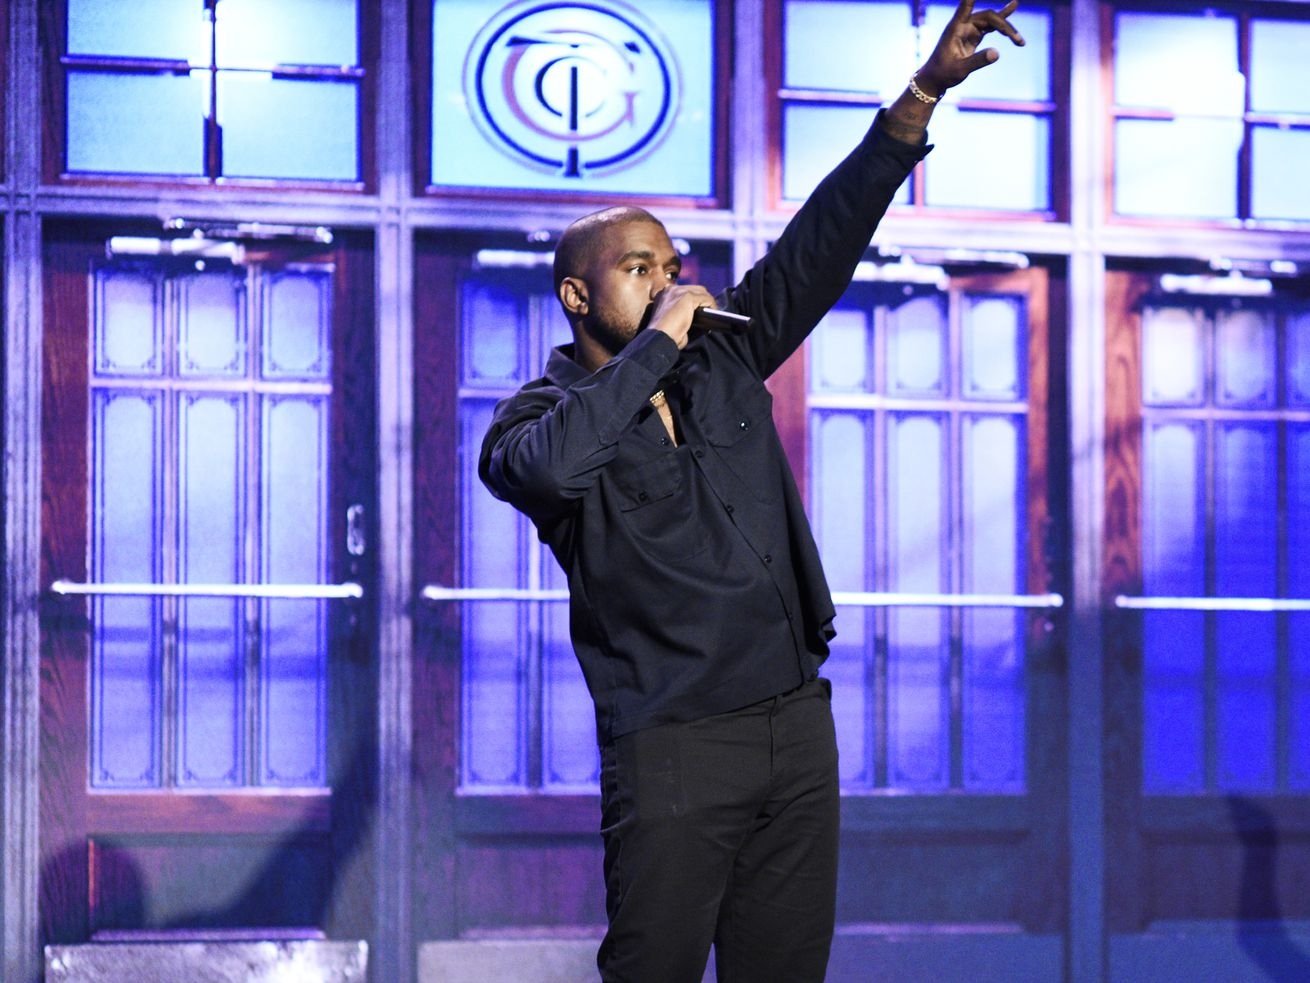 Kanye West performing on Saturday Night Live on September 29. West was criticized for saying on Twitter that the 13th Amendment should be abolished; he later walked back those comments.